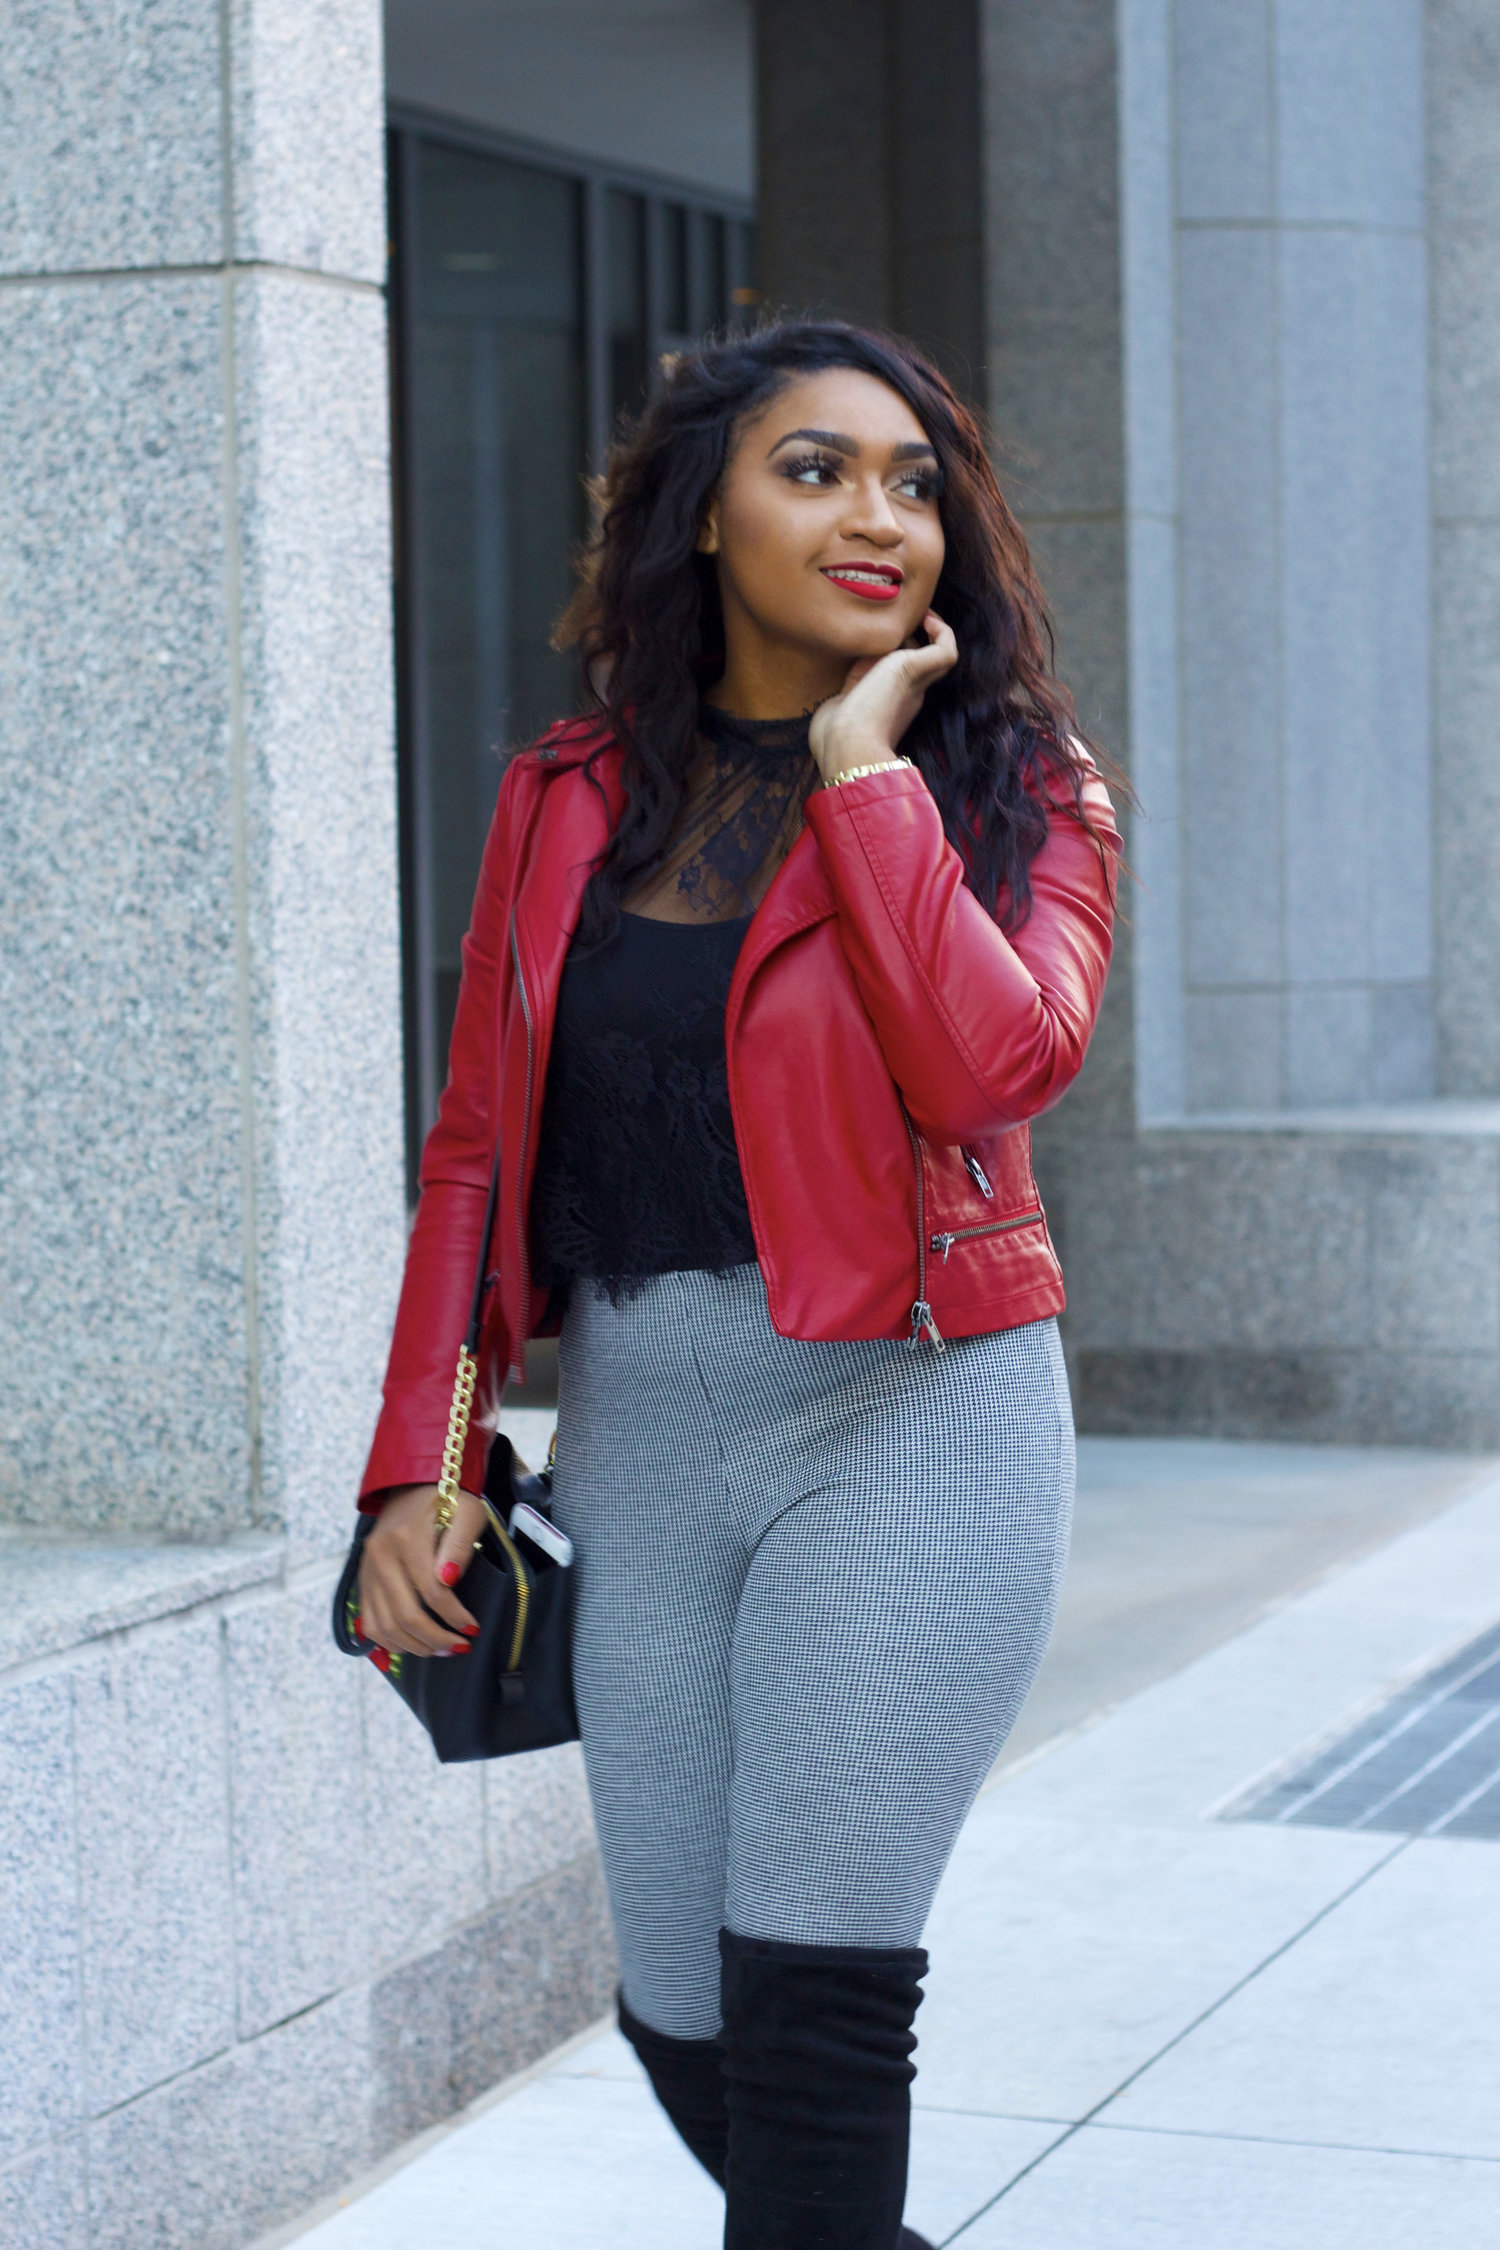 76e0bcda62c Black Knee High Boots x Red Leather Jacket — Jasmine Diane